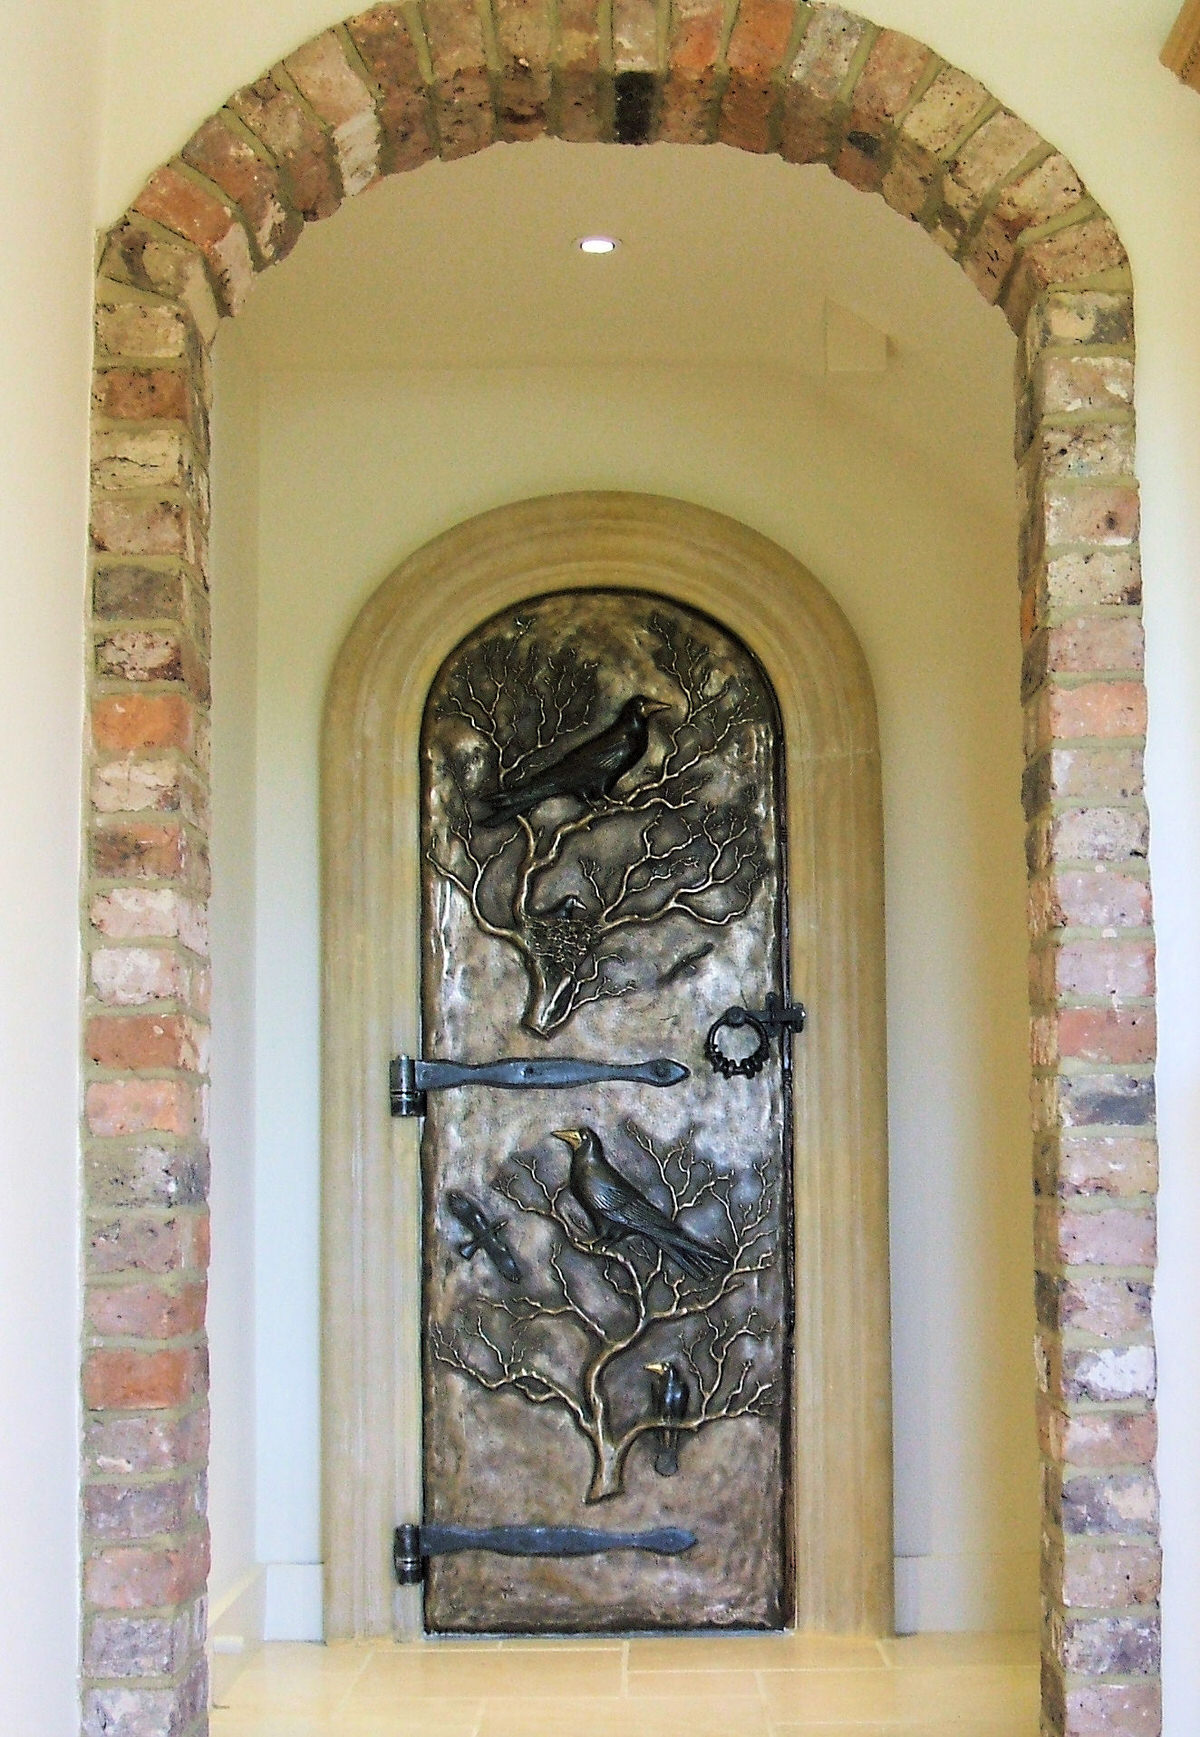 Secret Garden Door solid bronze door Henry Wislon Bronze Door sloane sqaure st patricks catherdal new york bronze door amalfi italy by Mark Reed